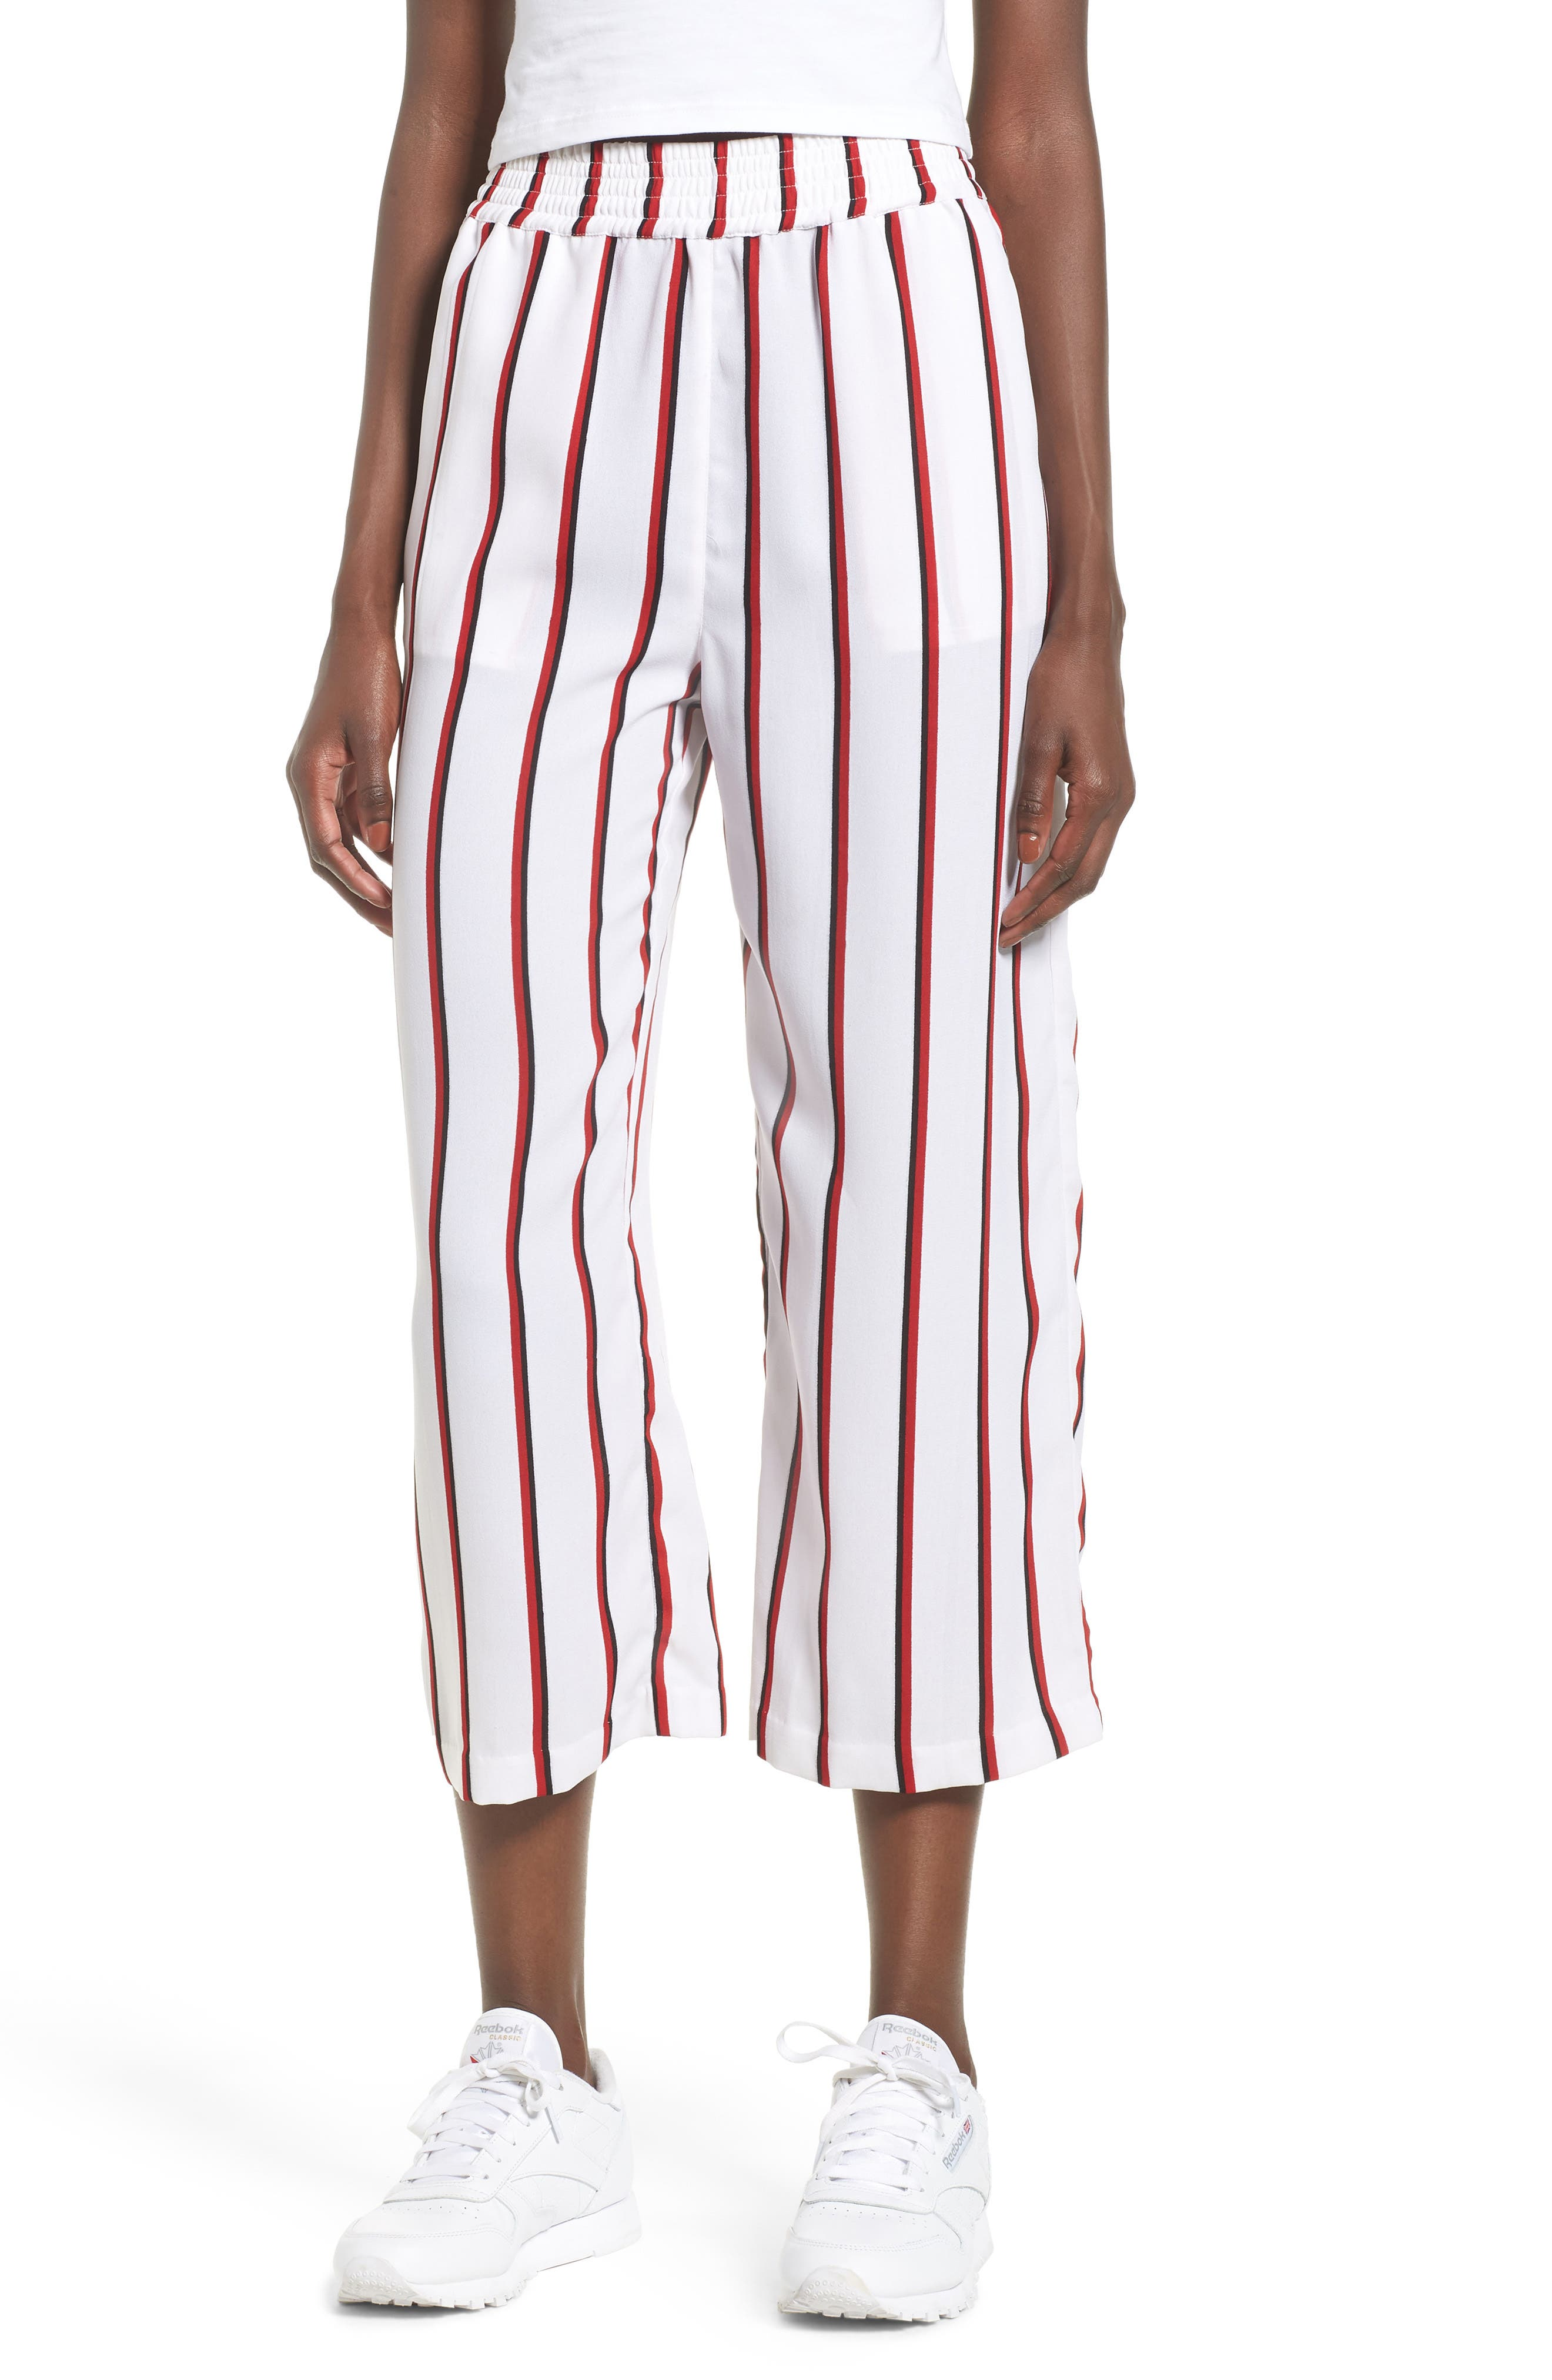 Counting Moons Stripe Culottes,                         Main,                         color, Chili Red